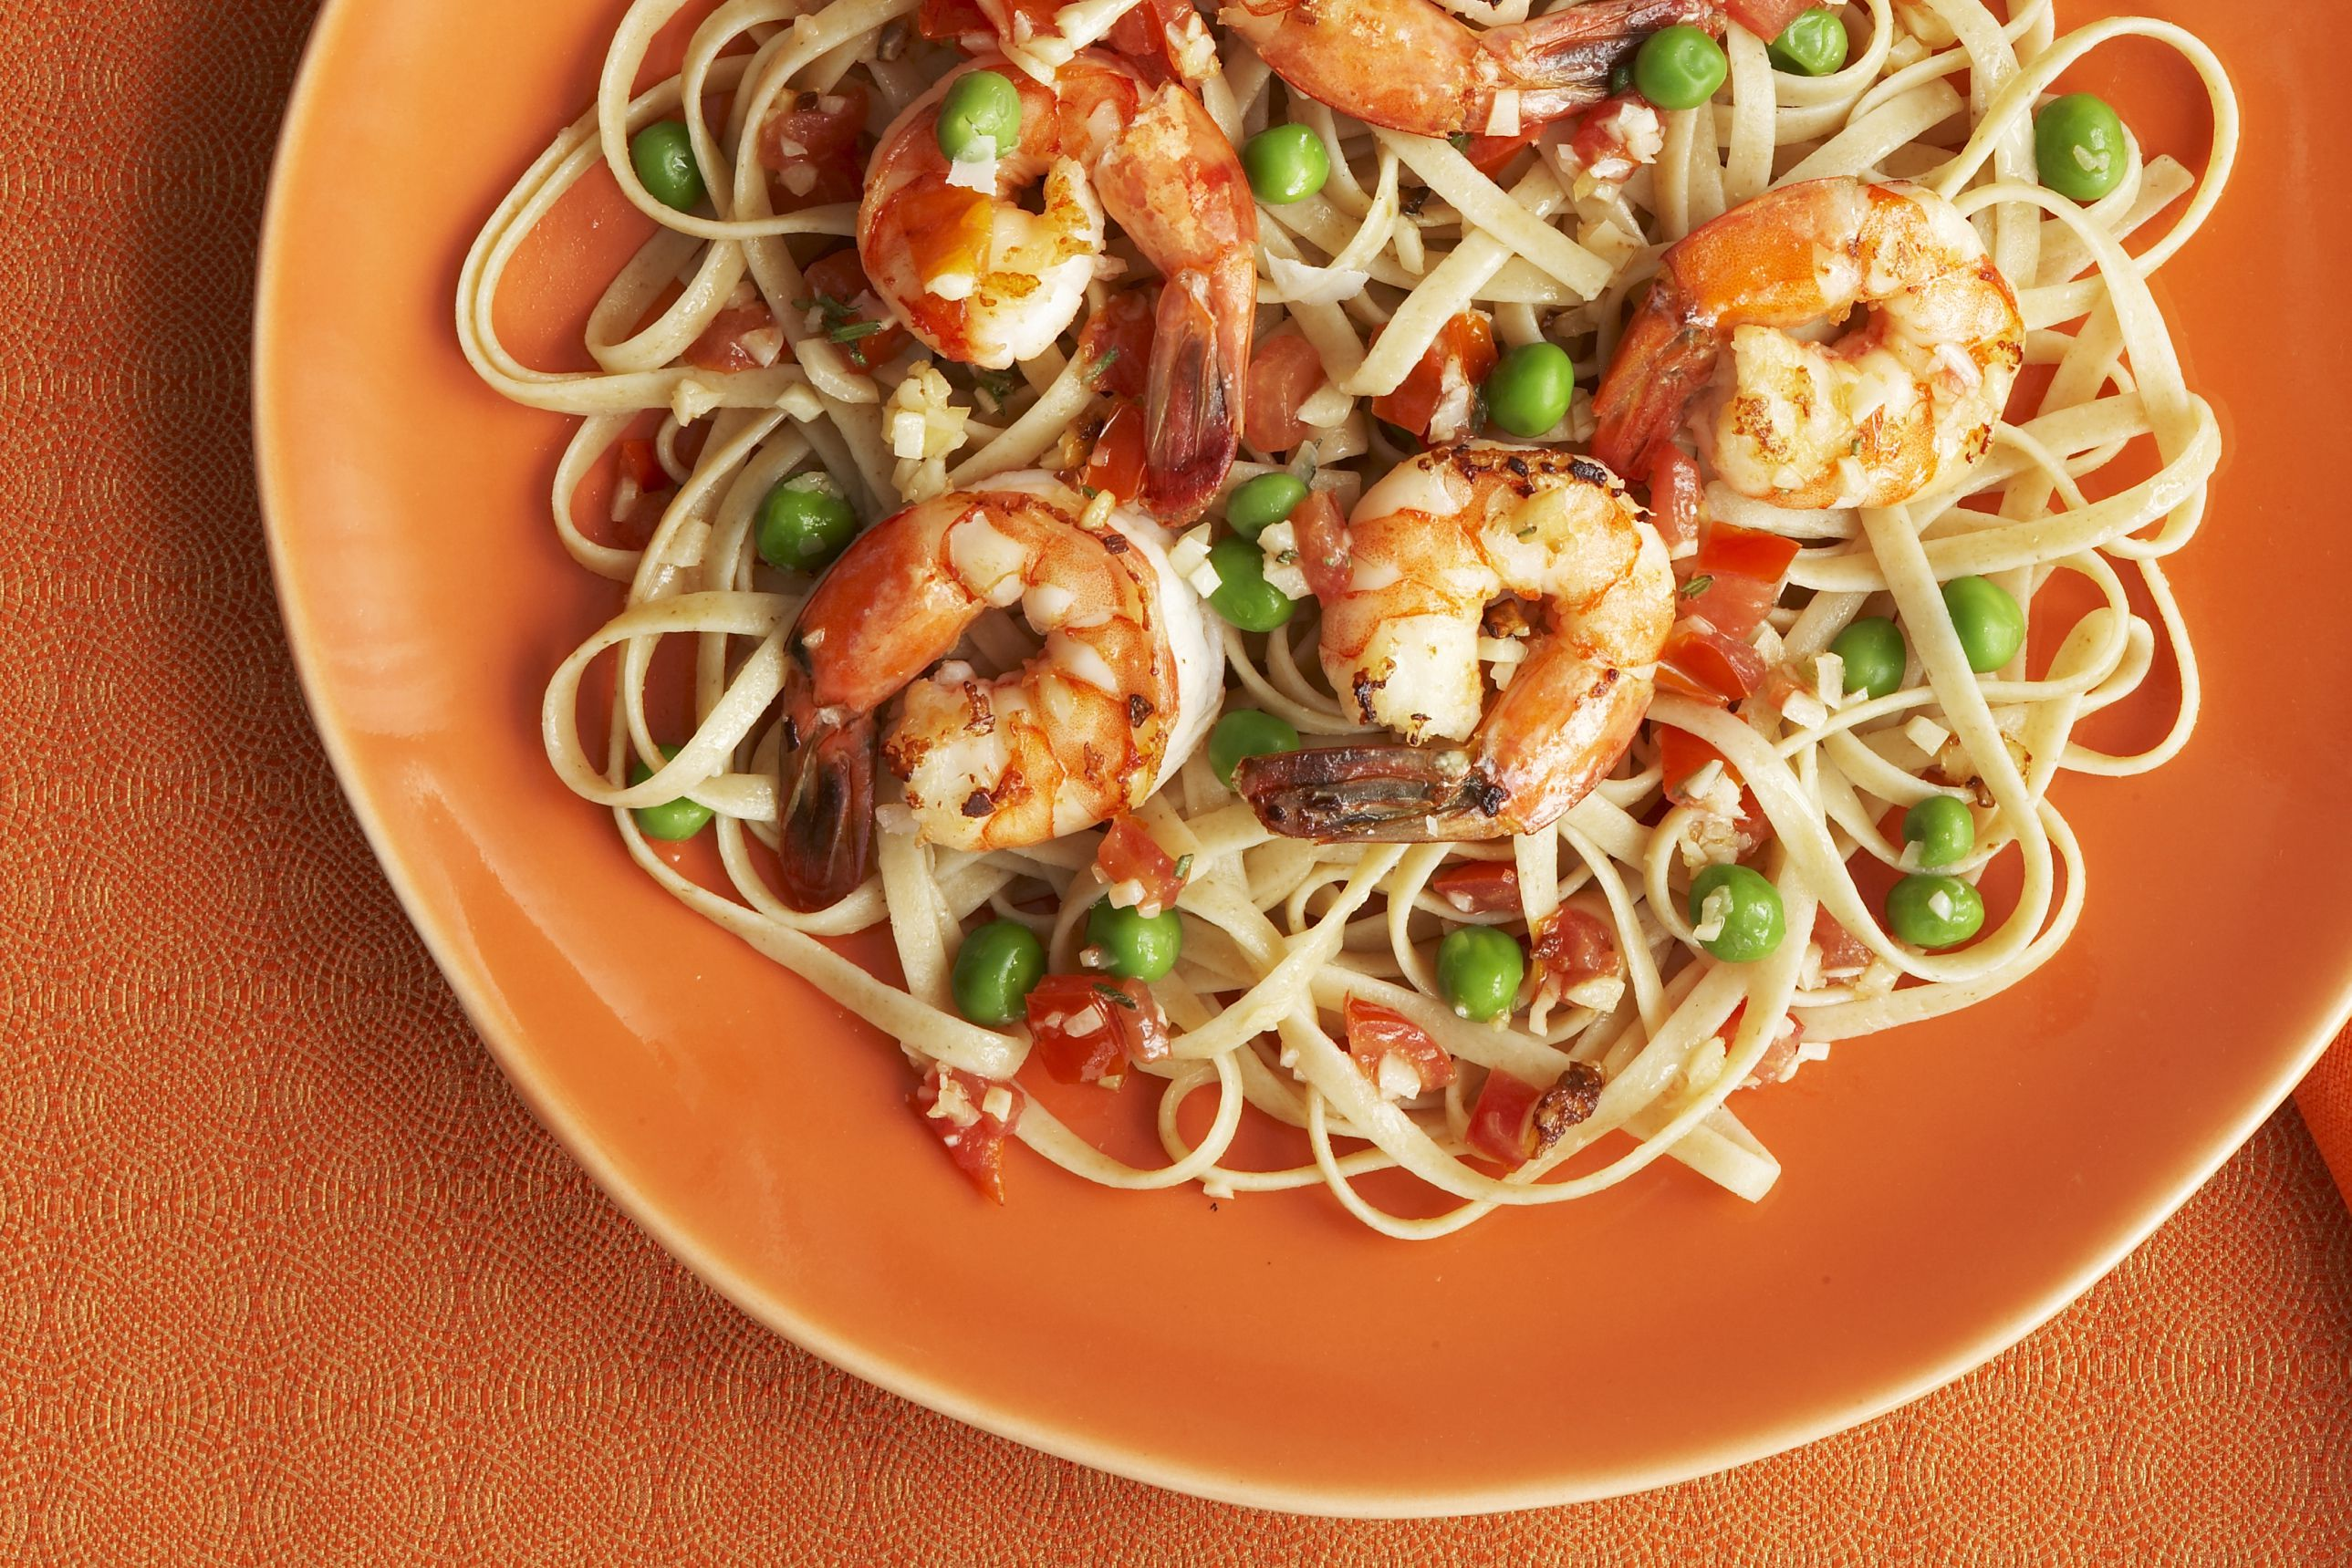 Delicious and Easy to Make Shrimp and Linguine Bake